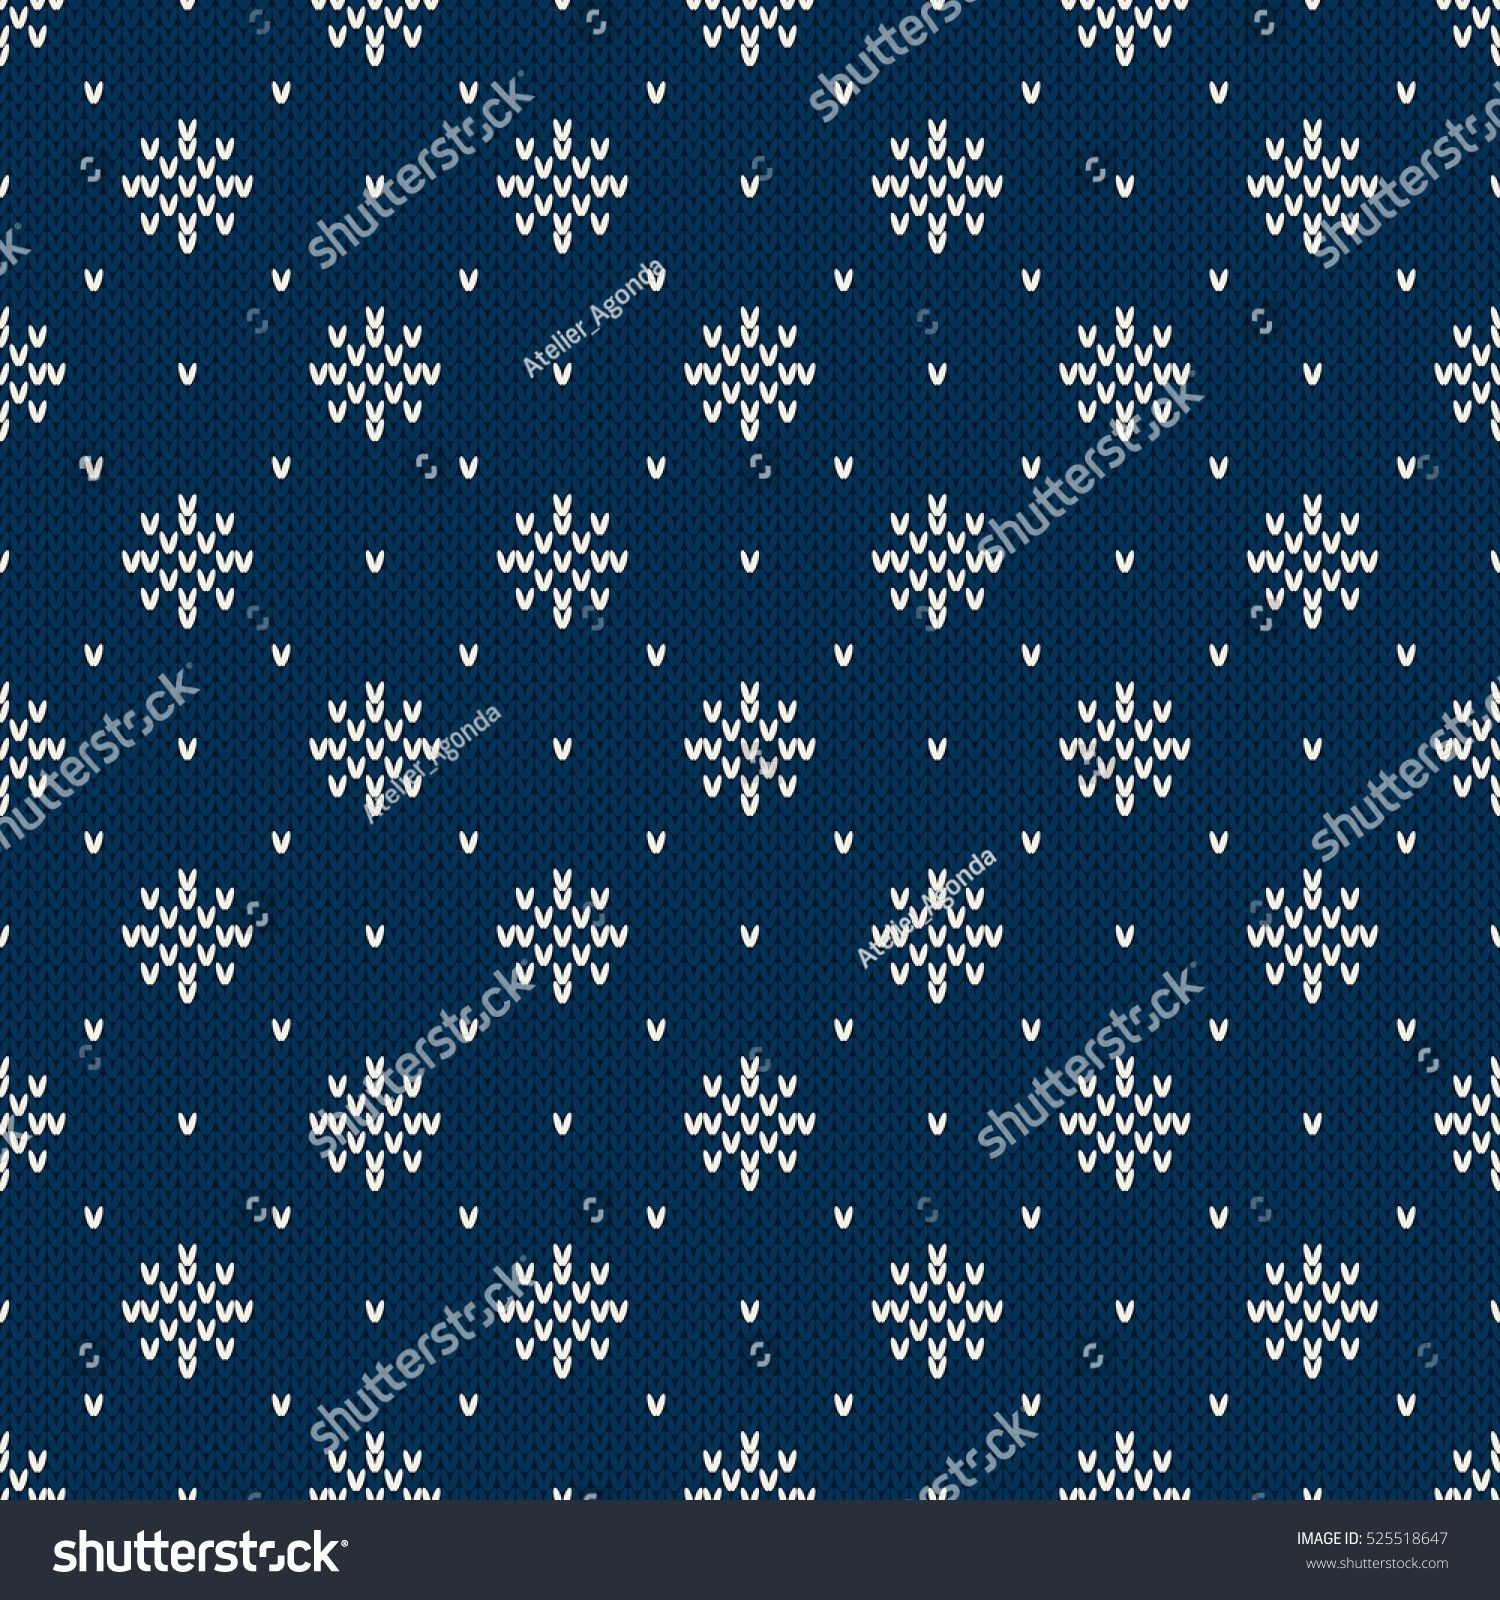 77bfea1aeb6424 Winter Holiday Knitted Pattern with Snowflakes. Fair Isle Knitting Sweater  Design. Seamless Christmas and New Year Background